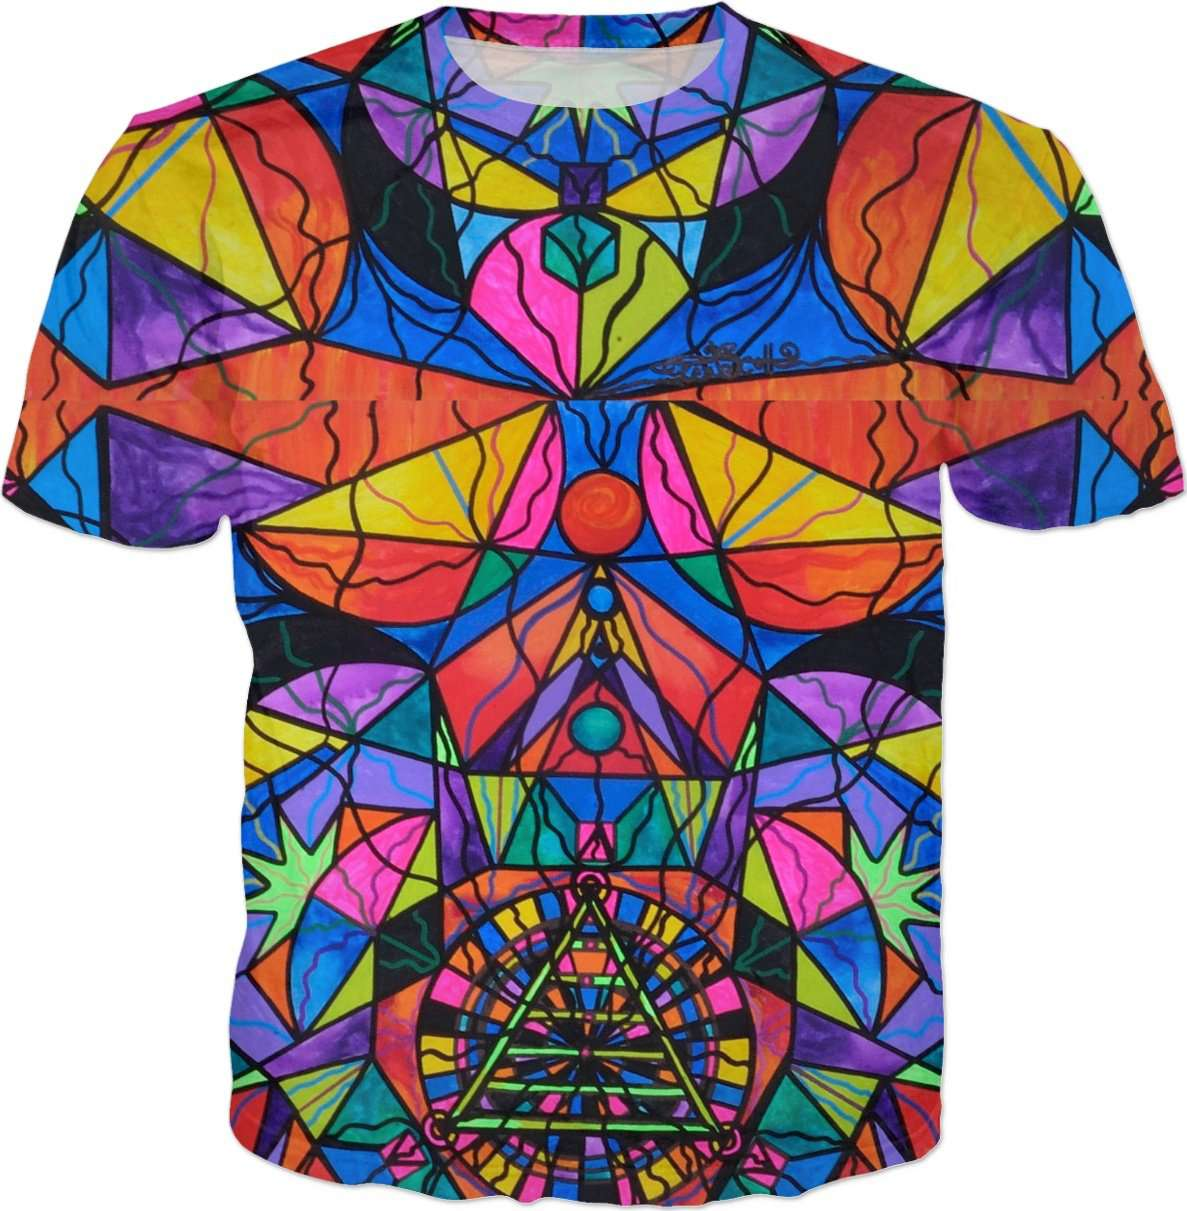 Triune Transformation Tiled - Men's T-shirt